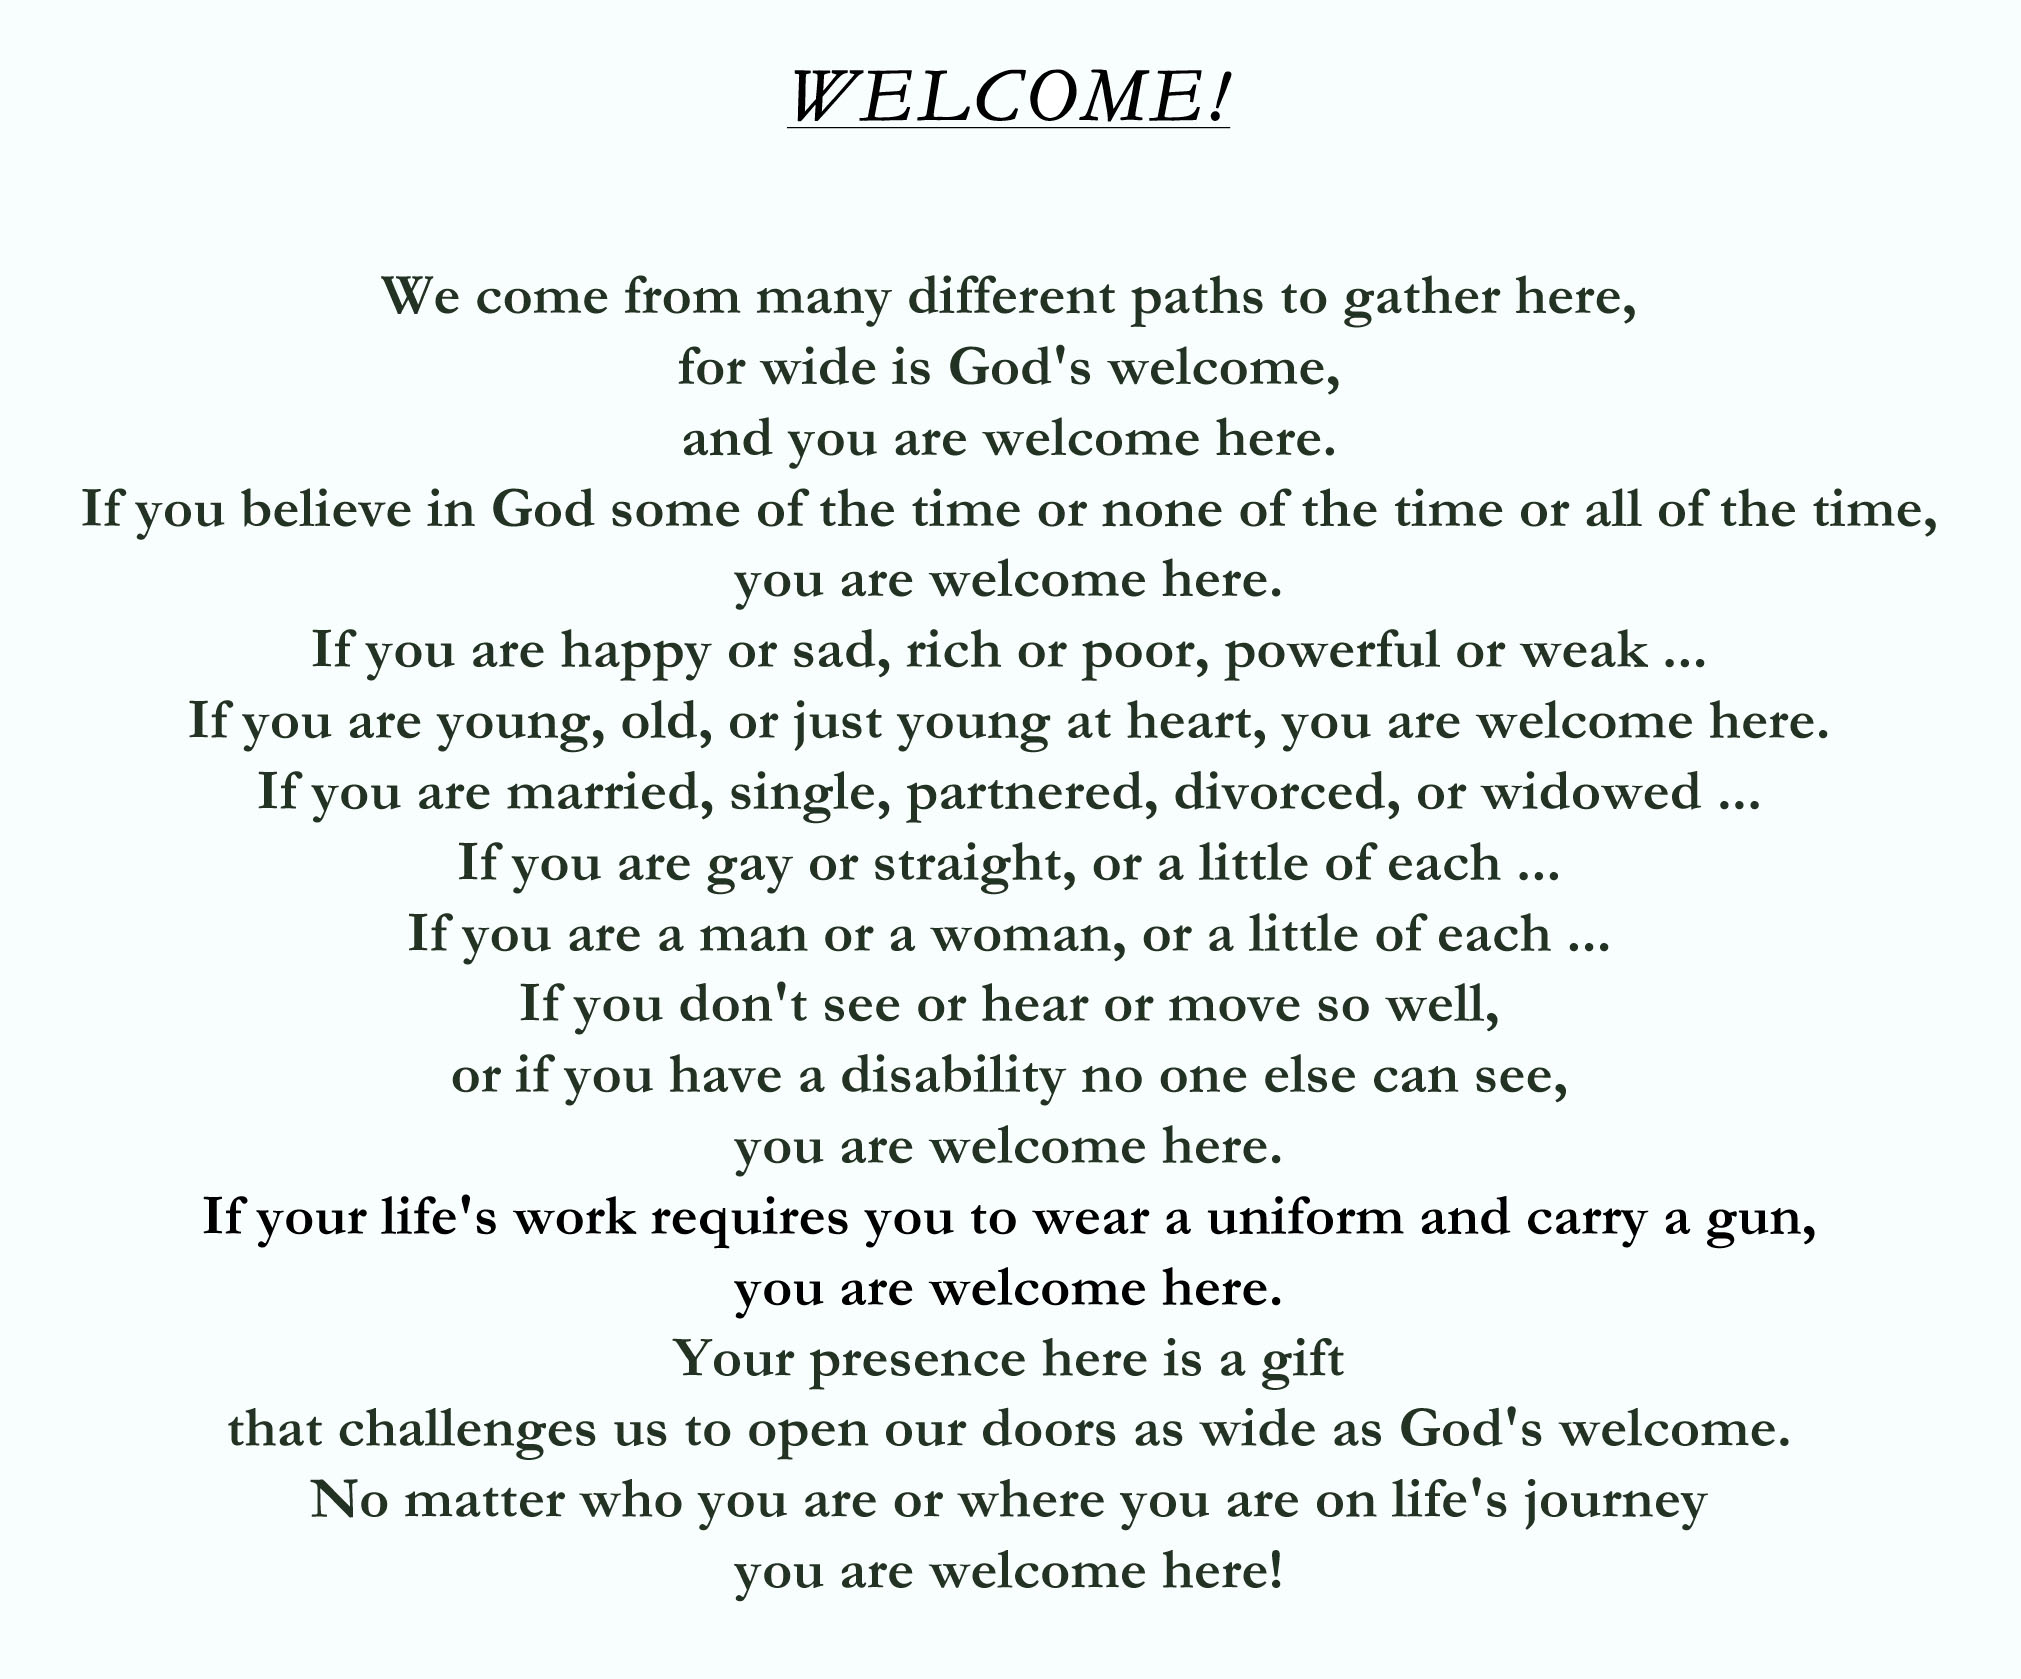 WELCOME STATEMENT final